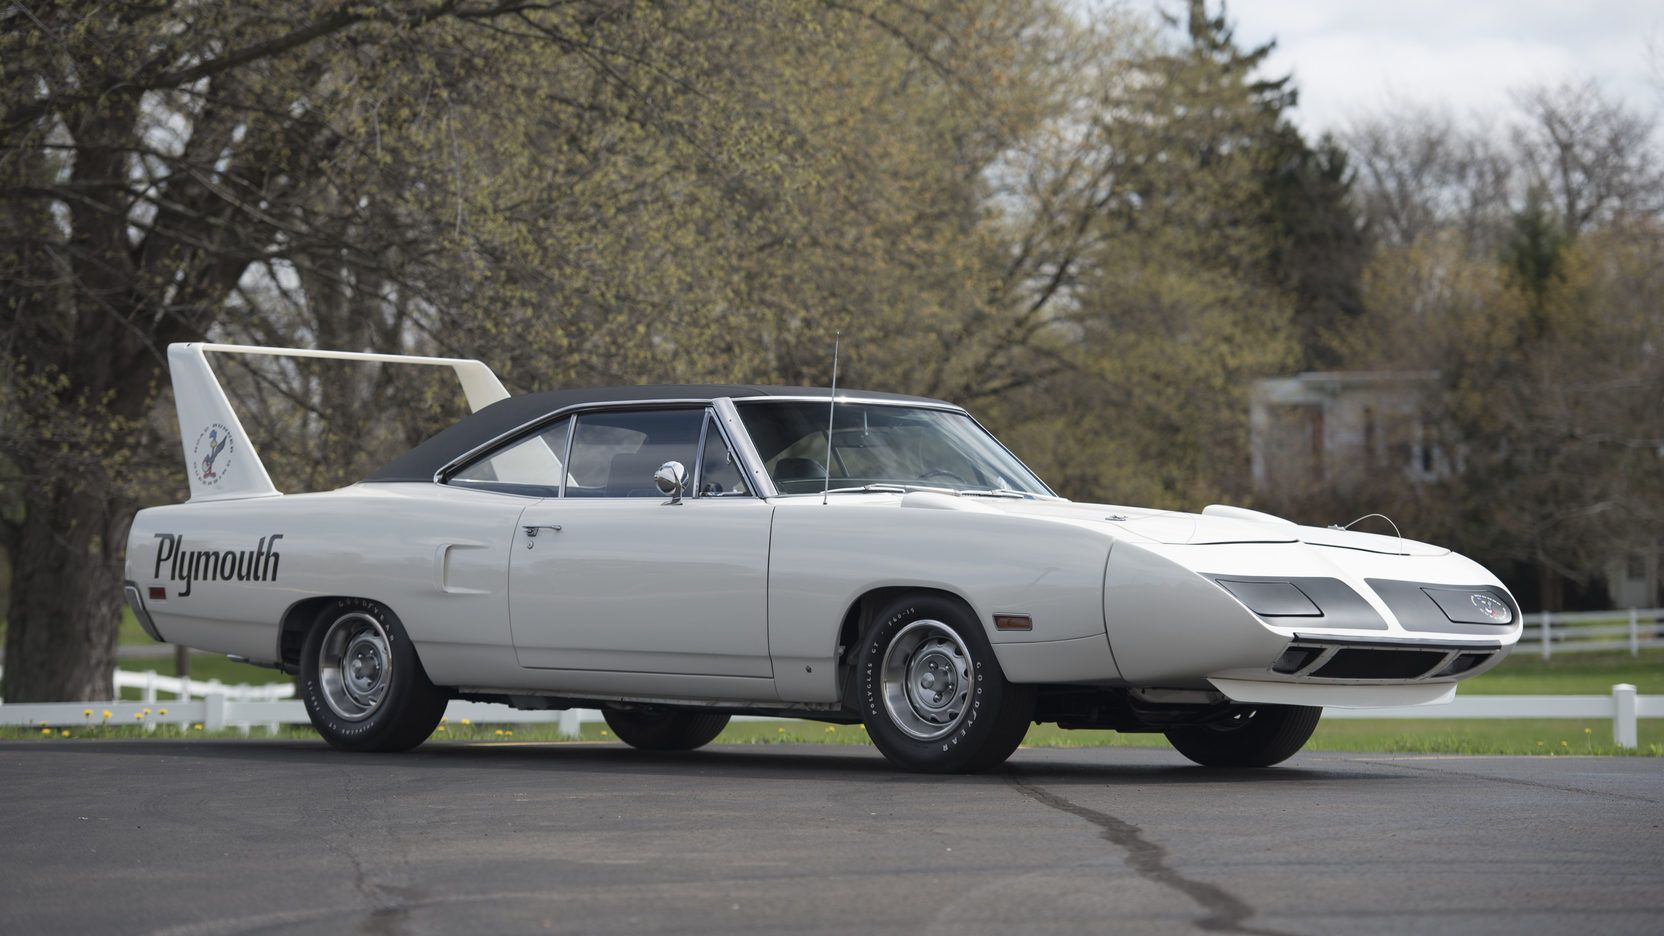 1970 Plymouth Hemi Superbird presented as Lot S92 at